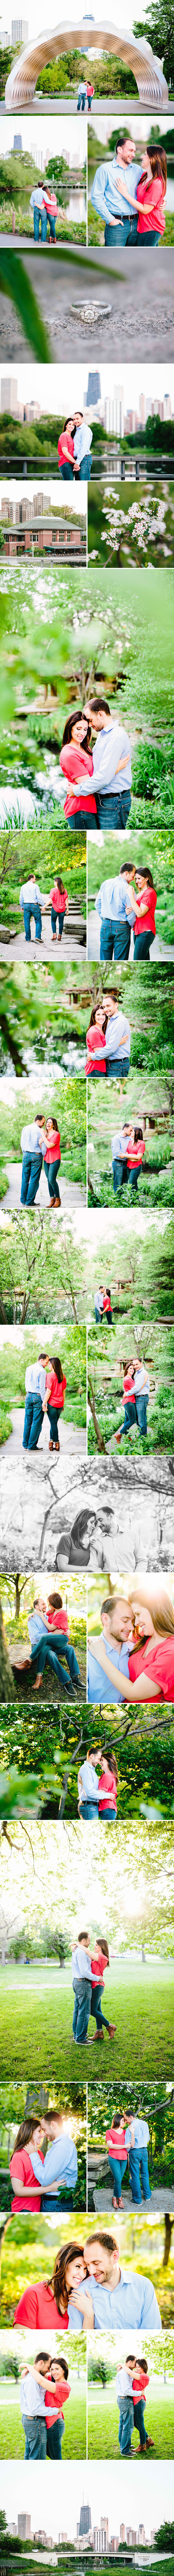 chicago-fine-art-wedding-photography-dm